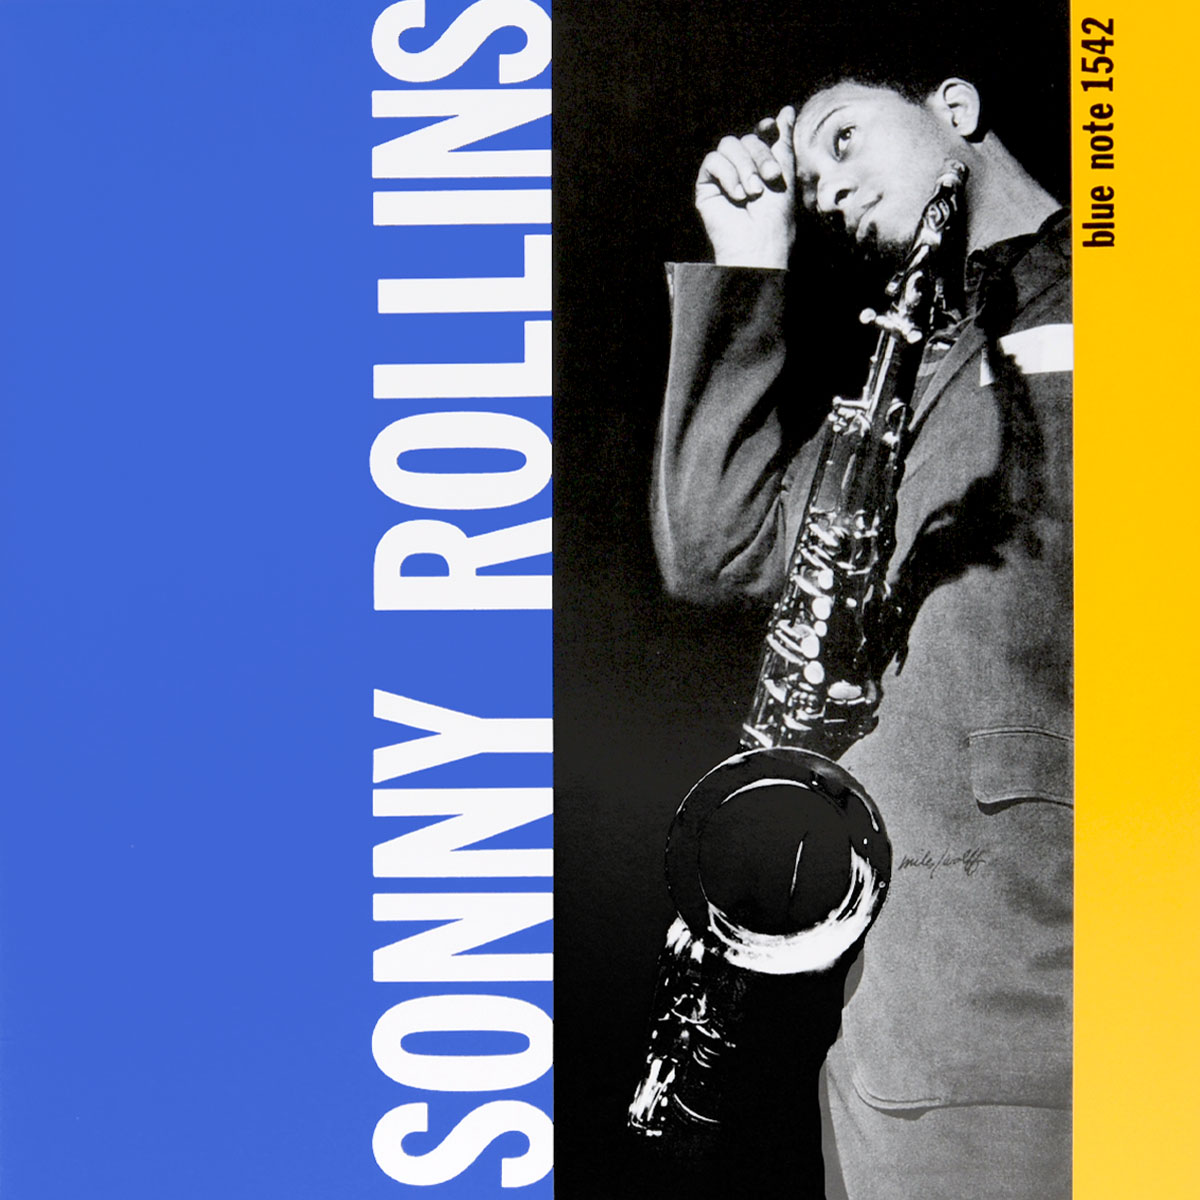 Сонни Роллинз Sonny Rollins. Volume 1 (LP) сонни роллинз sonny rollins holding the stage road shows vol 4